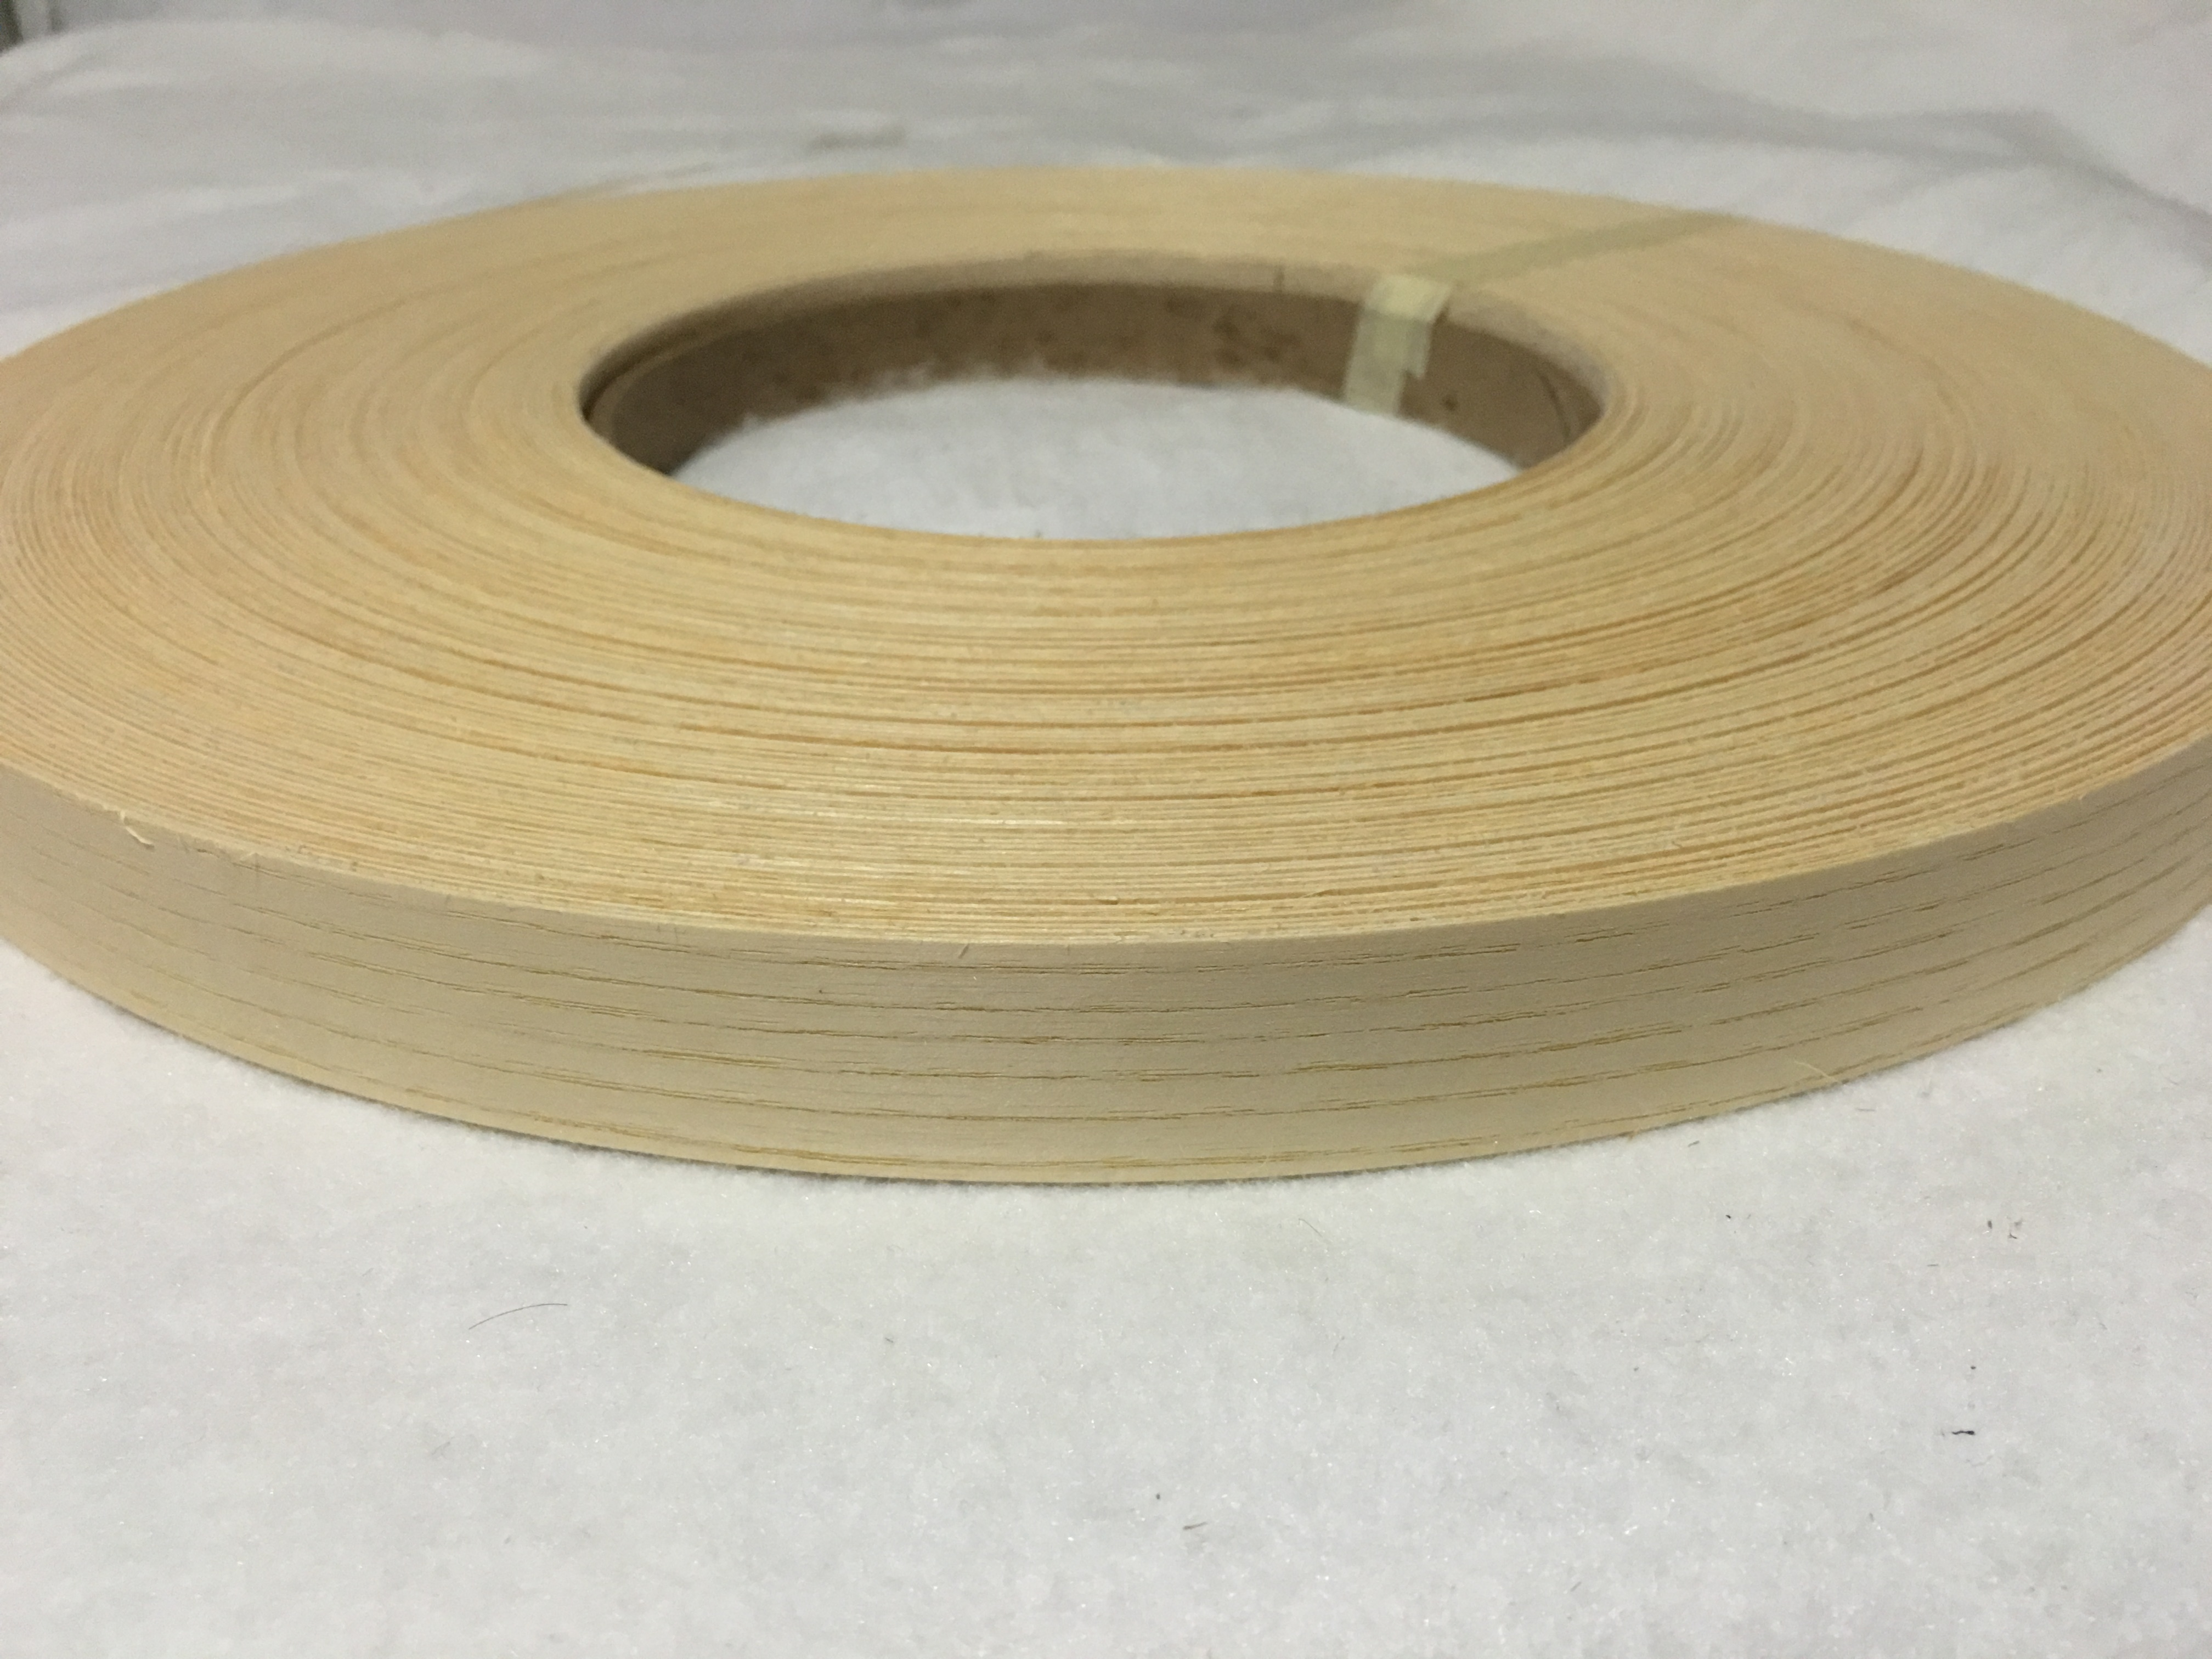 "Sapele Prefinished pre glued 7//8/""x250/' wood veneer edgebanding"